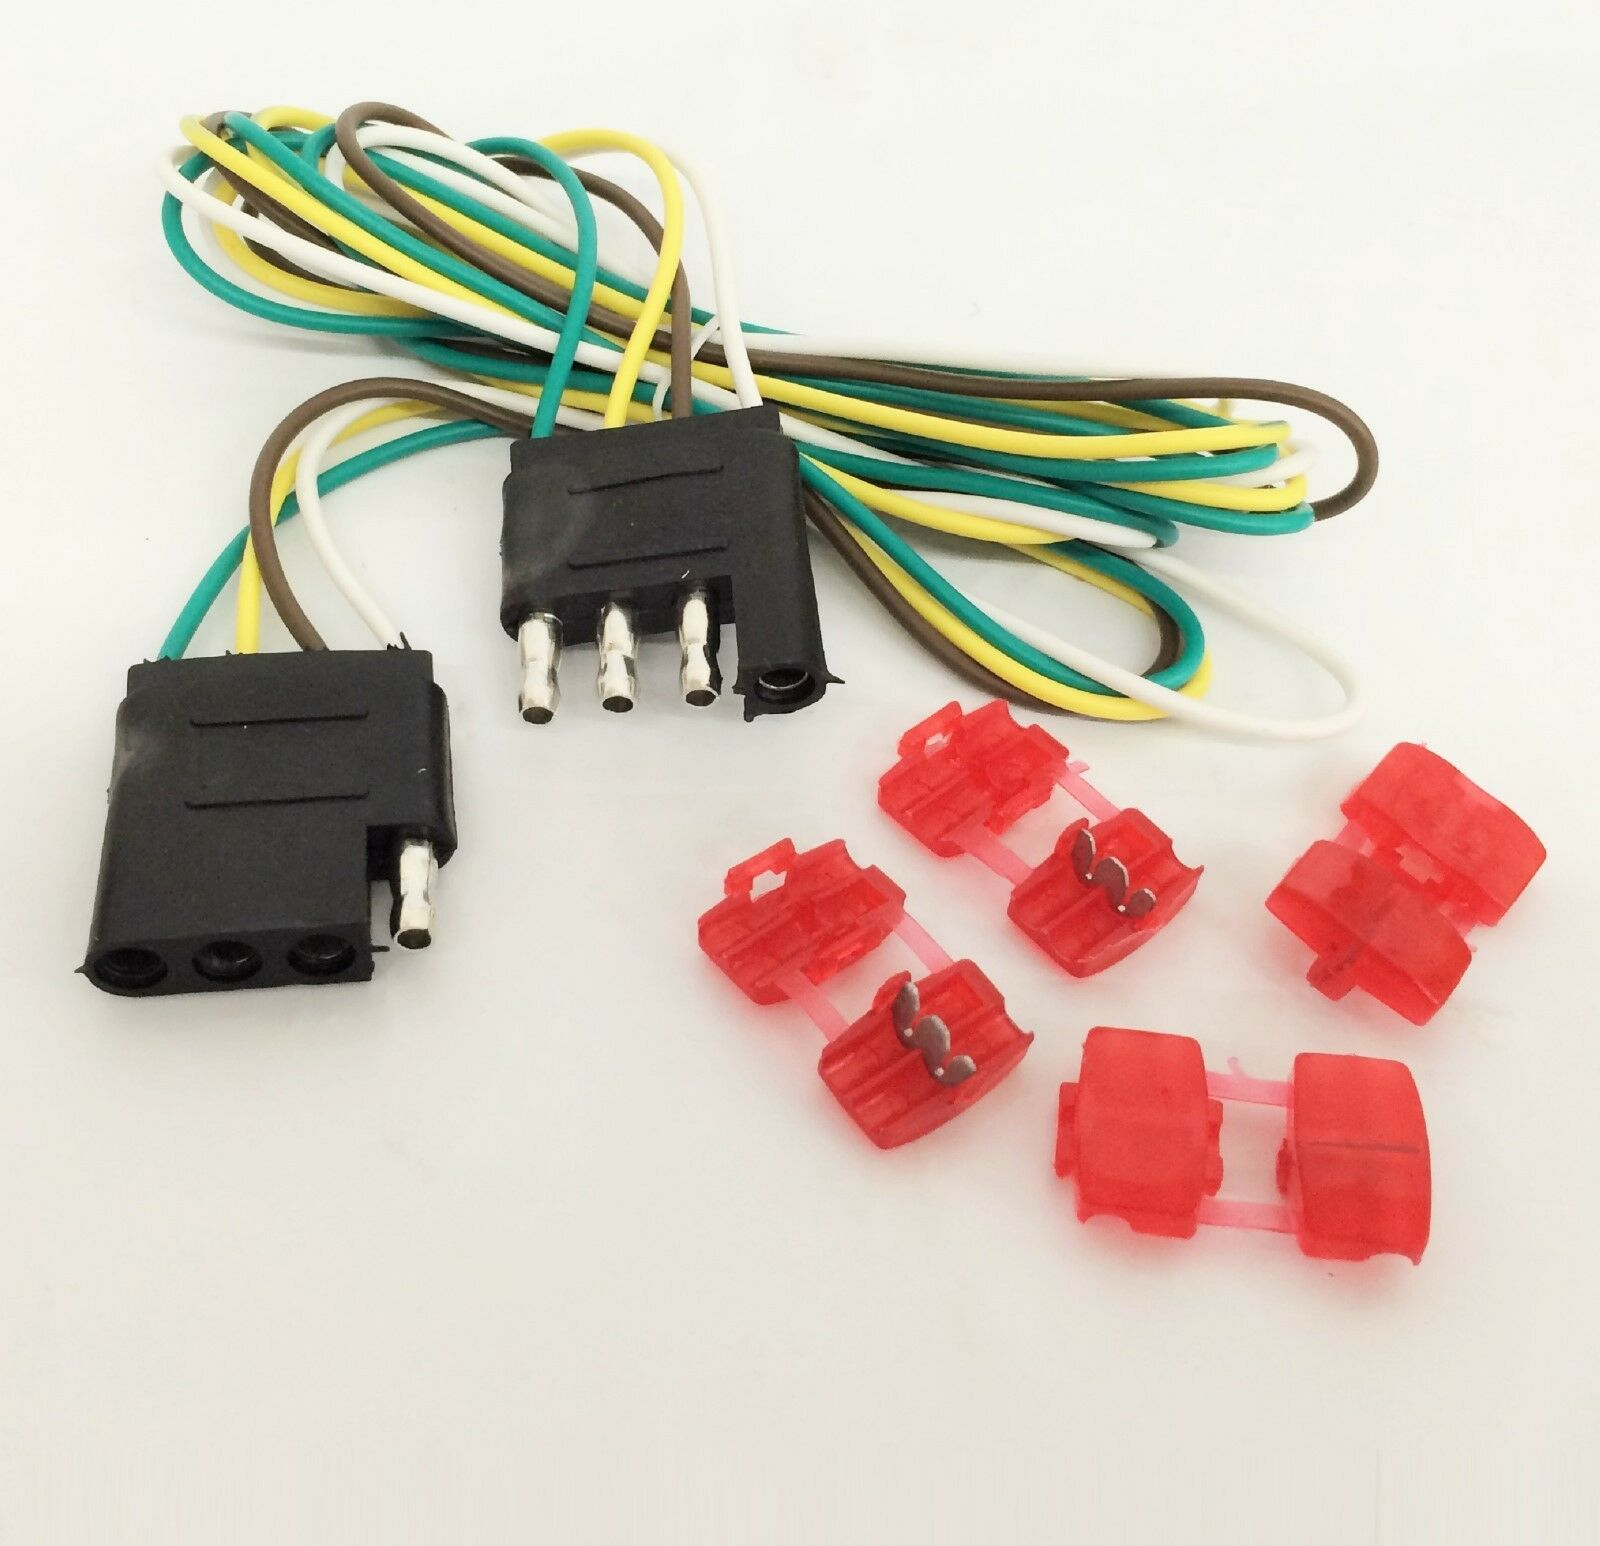 48 Trailer Light Wire 4 Way Flat Extension New How To A Pole 1 Of 1free Shipping See More